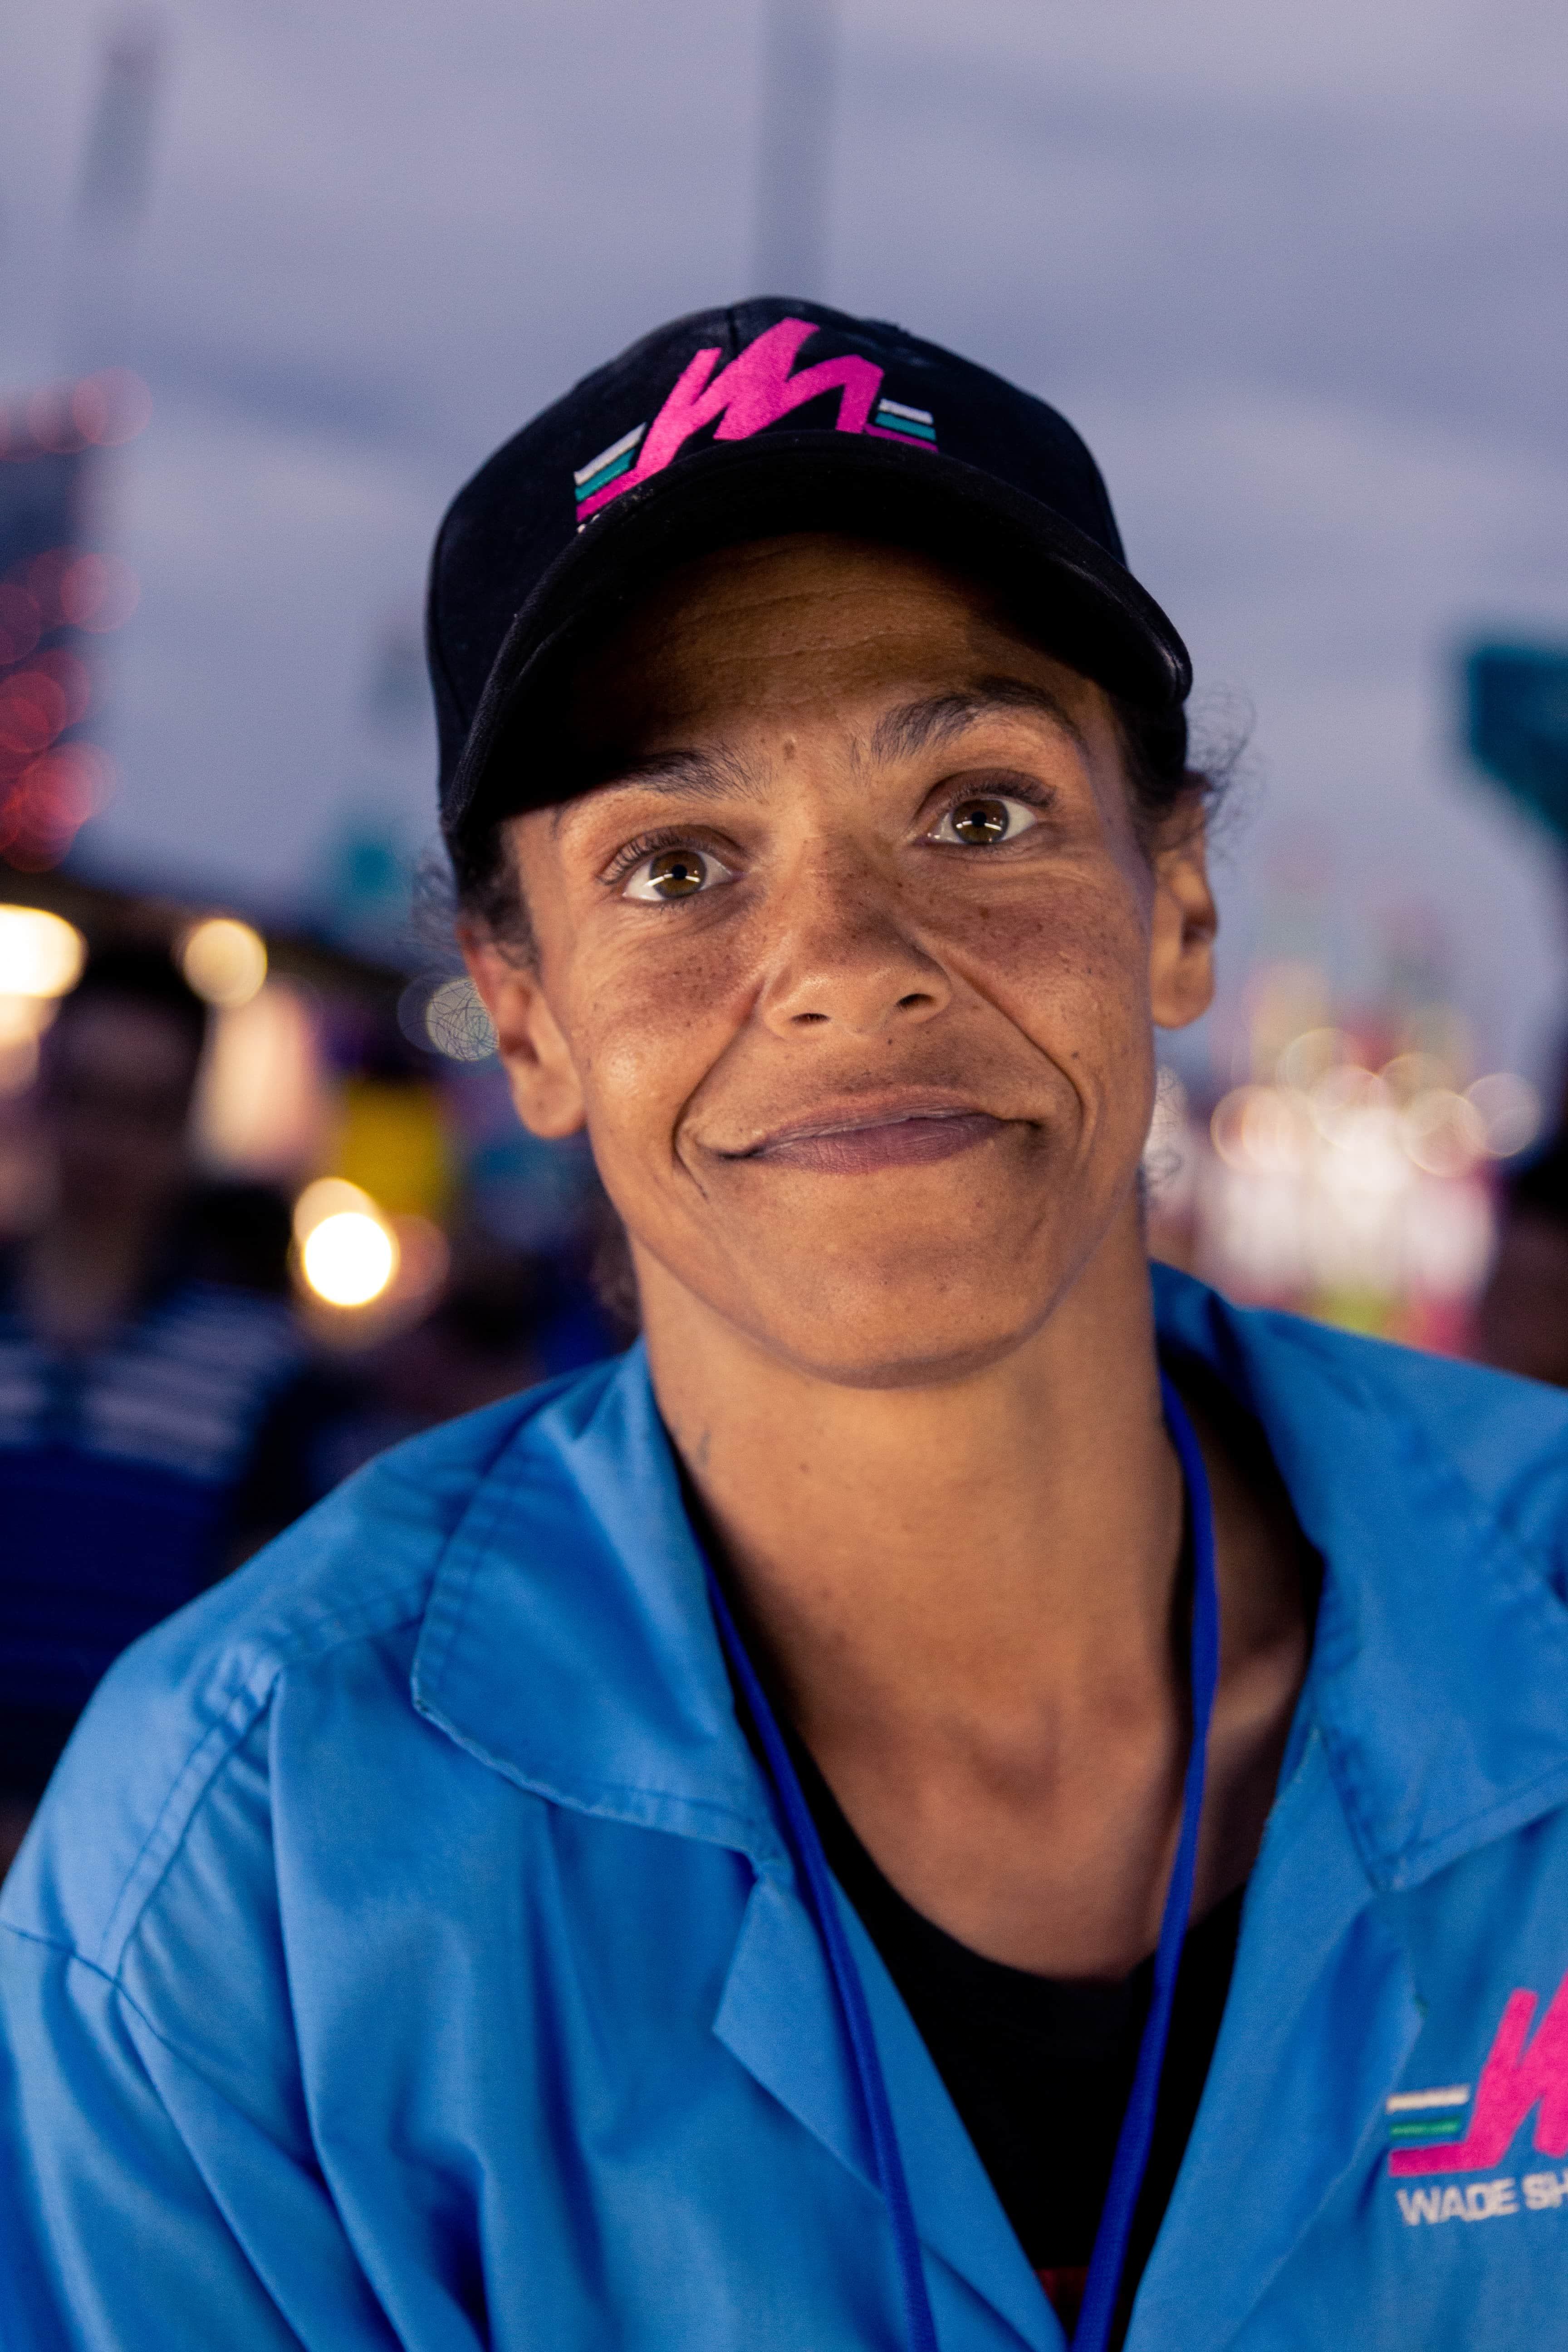 New York State Fair worker Renee Dolson